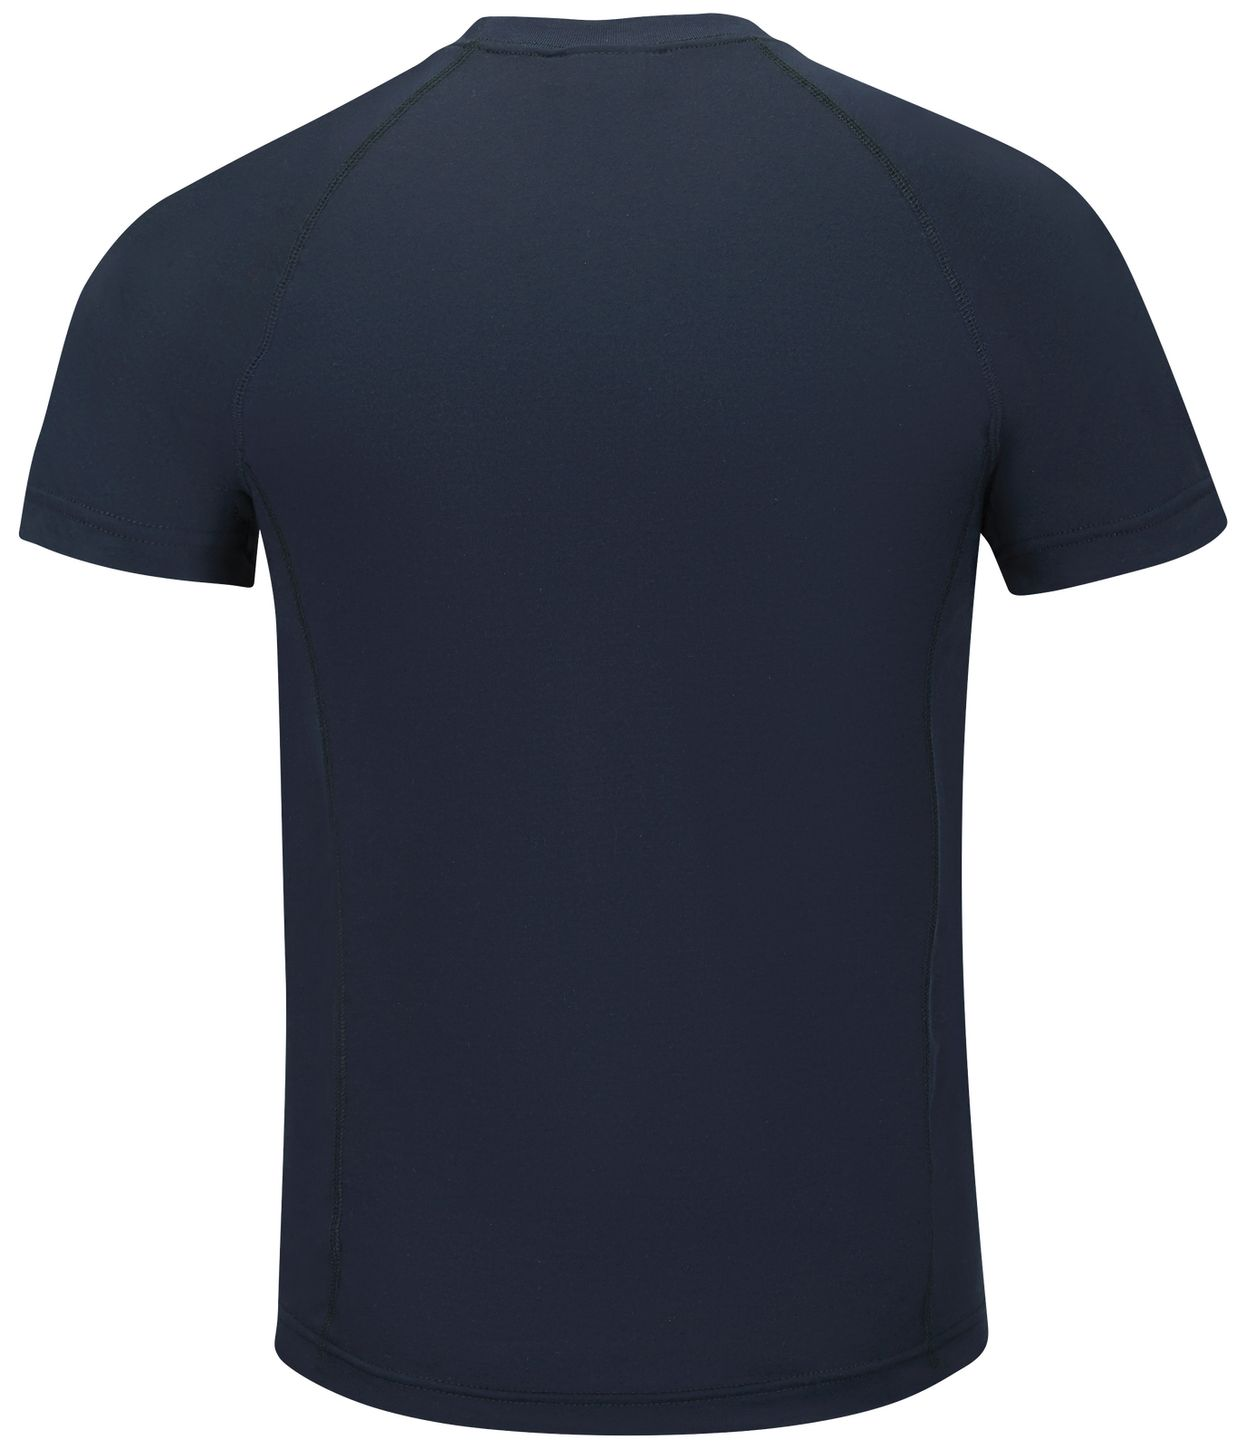 bulwark-fr-station-wear-tee-ft36-base-layer-athletic-style-navy-back.jpg